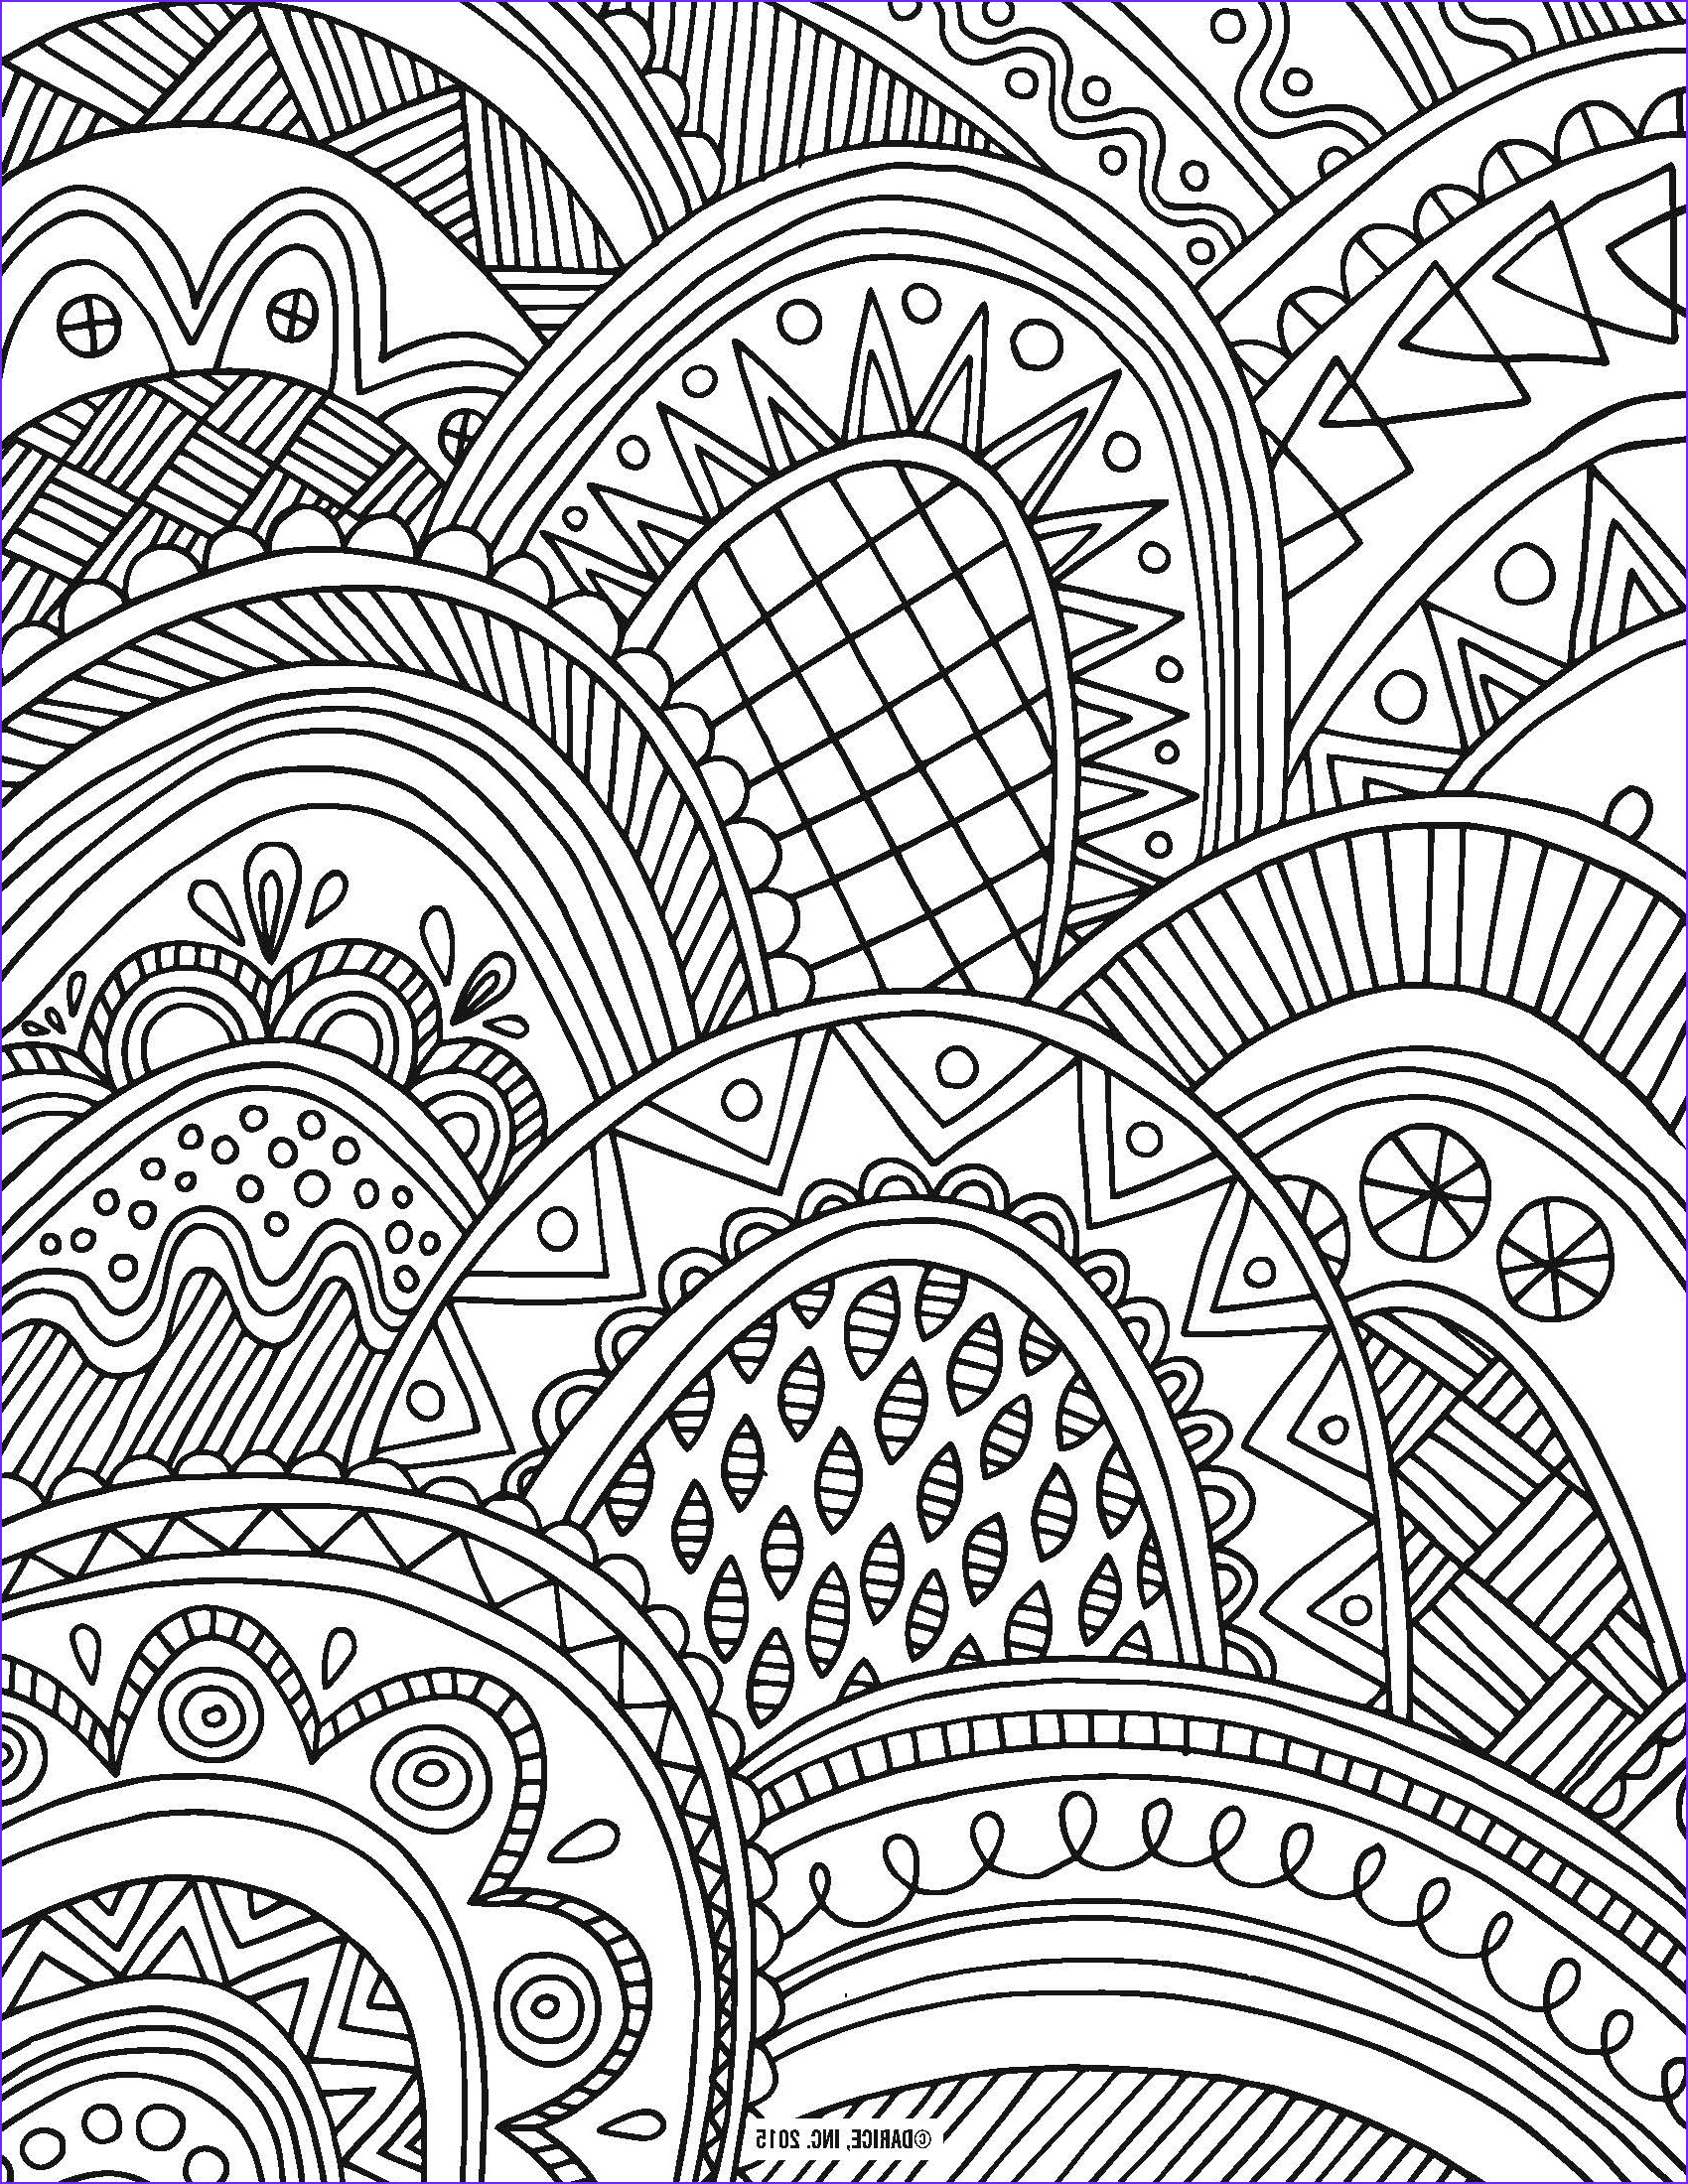 Color Coloring Page Best Of Image 40 top Free Coloring Pages We Need Fun